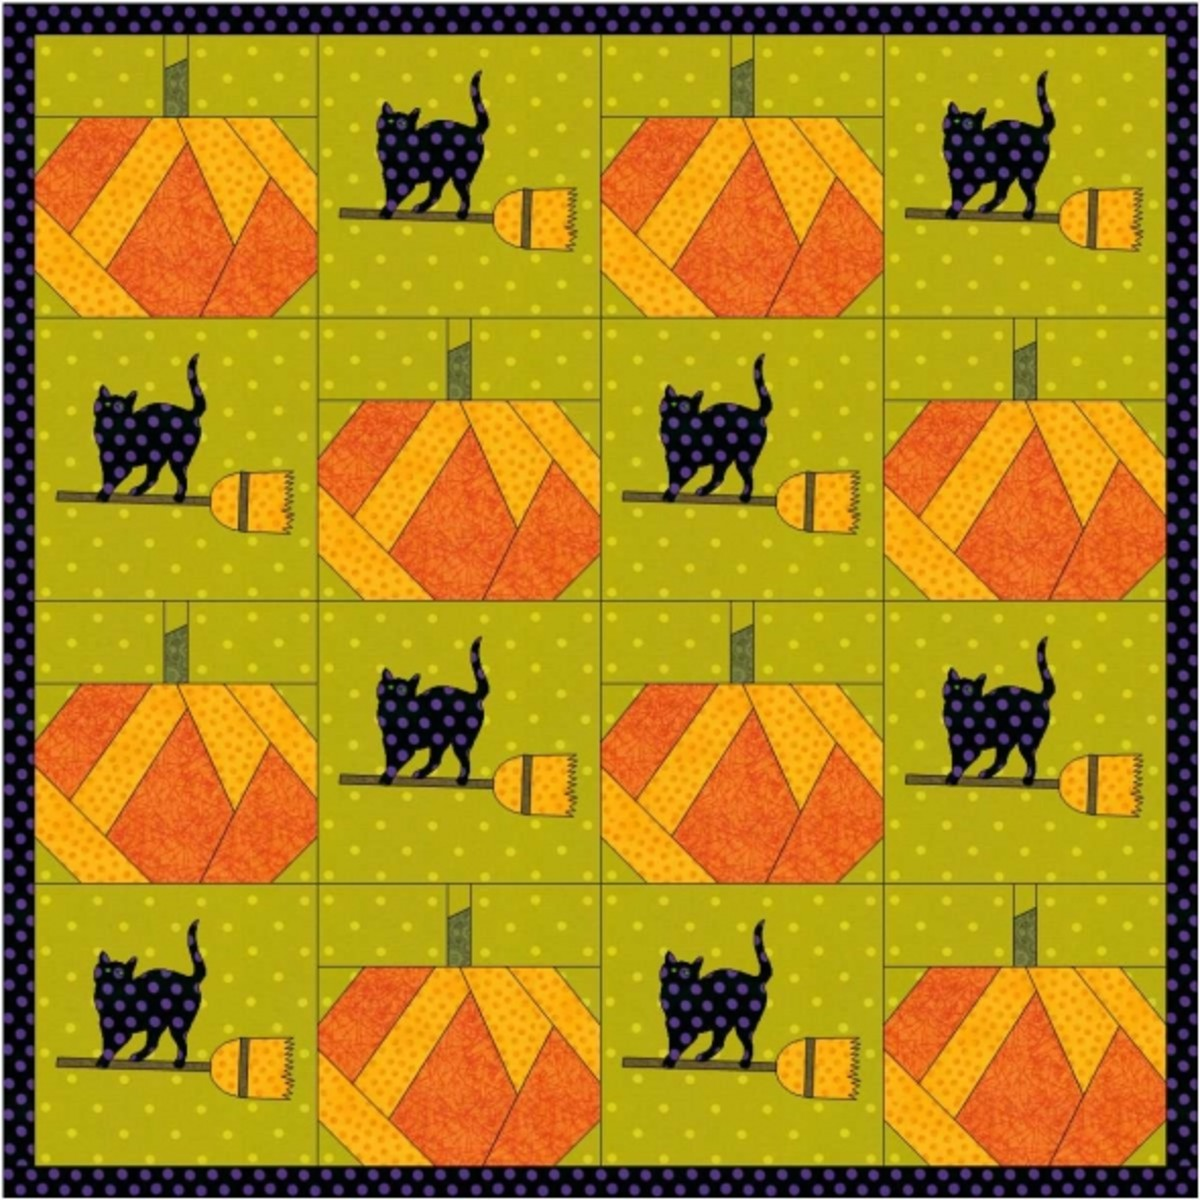 Cats and Jack-o'lanterns quilt